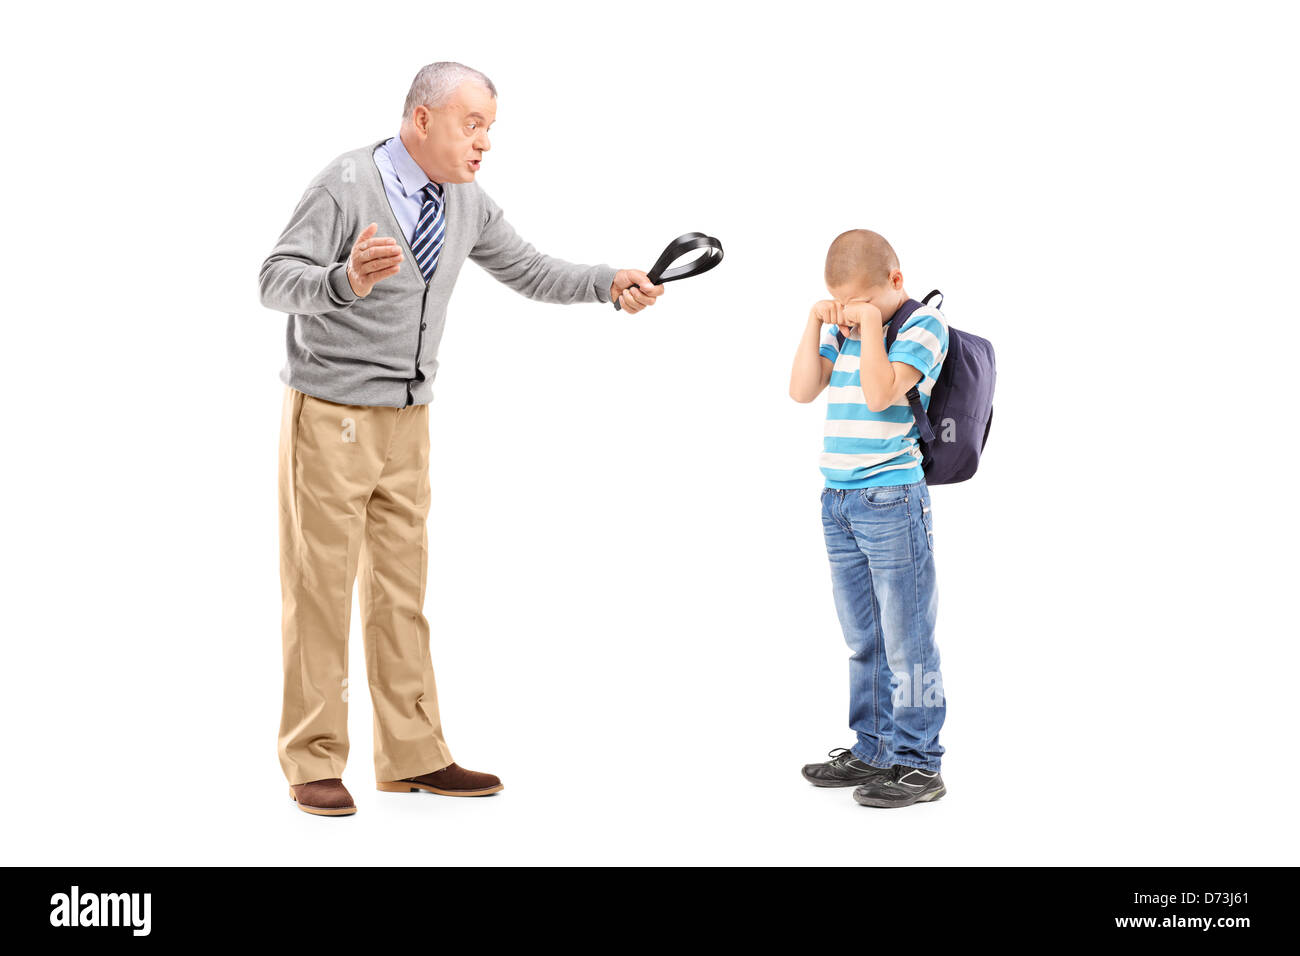 Full length portrait of an angry grandfather holding a belt and threatening on his nephew isolated on white background - Stock Image